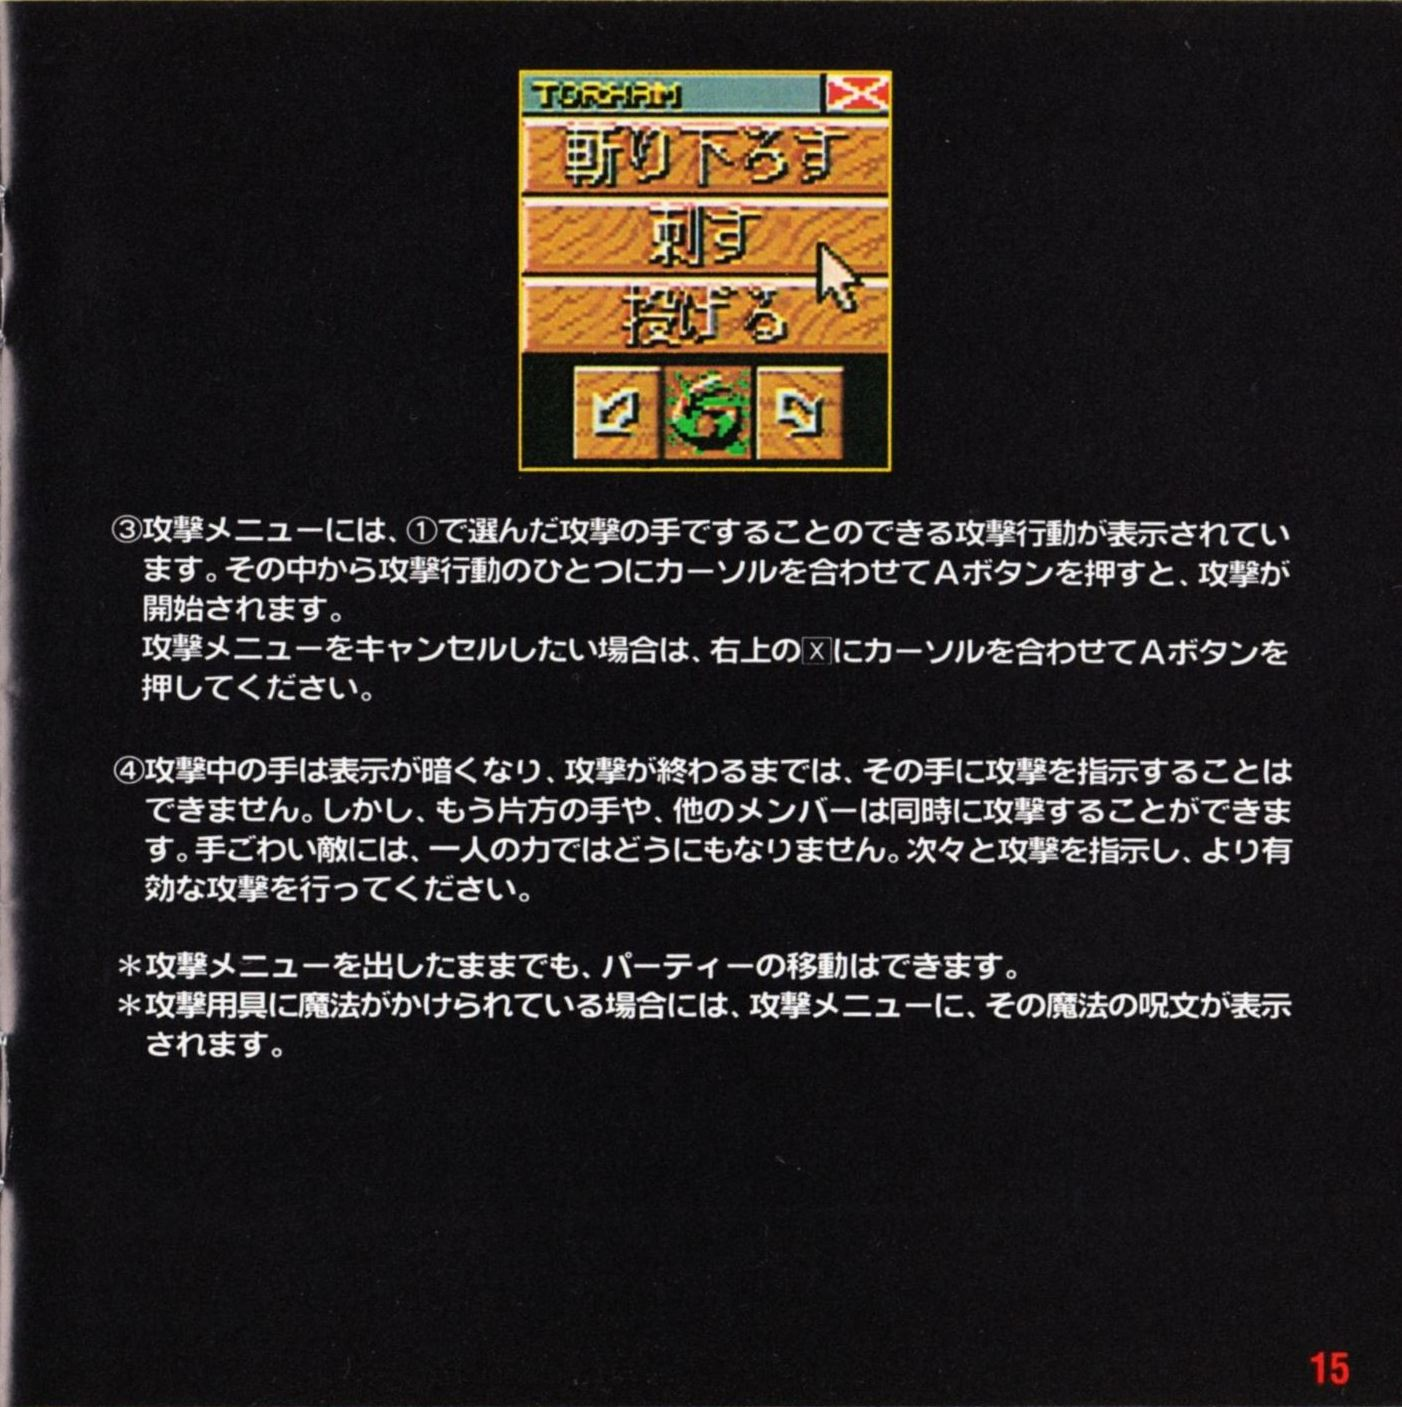 Game - Dungeon Master II - JP - Mega CD - Booklet - Page 017 - Scan